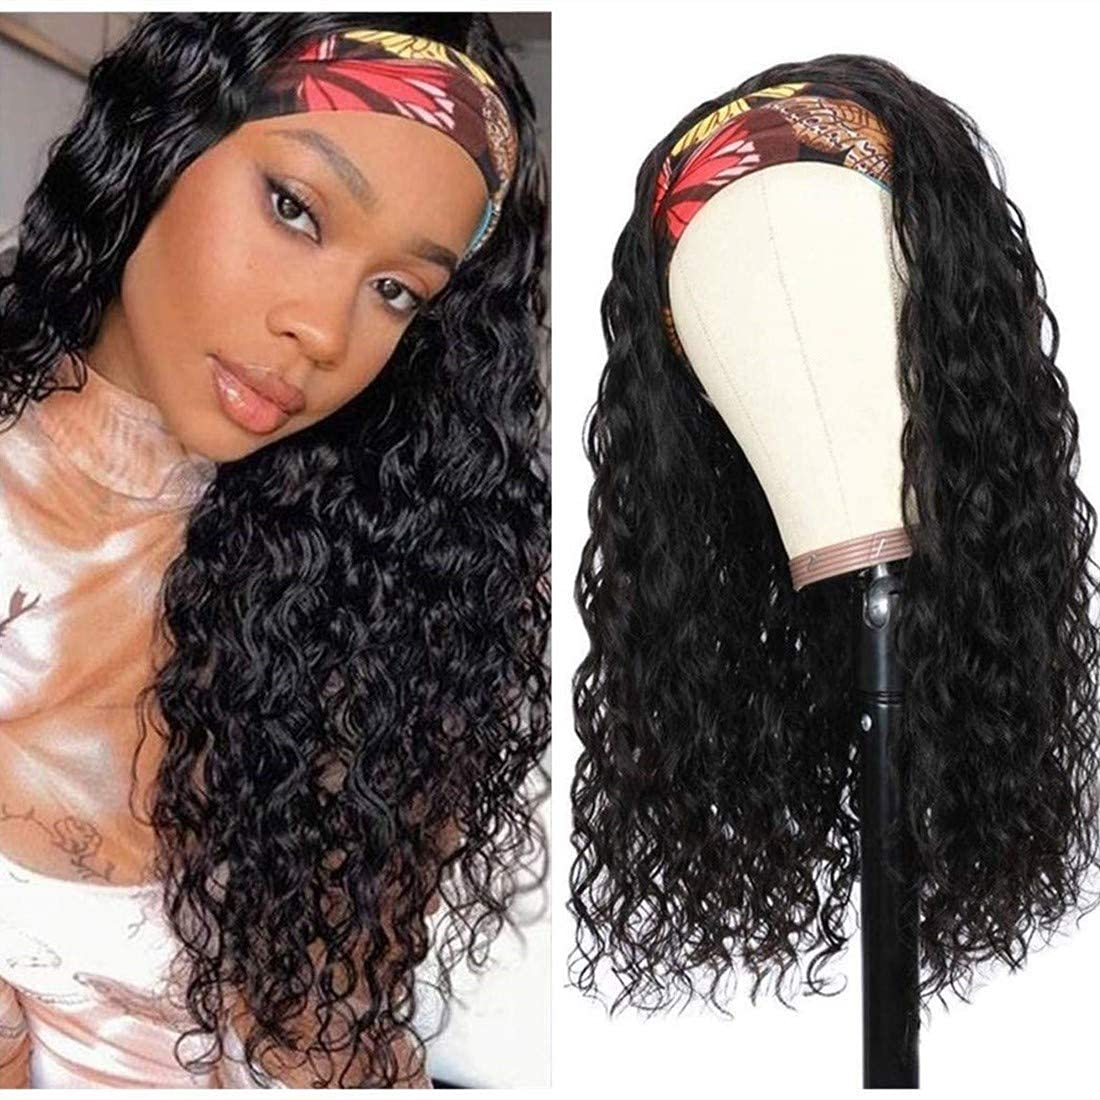 SEAL limited product BLISSHAIR Headband Wig Latest item Human Hair Water for Wome Black Wigs Wave